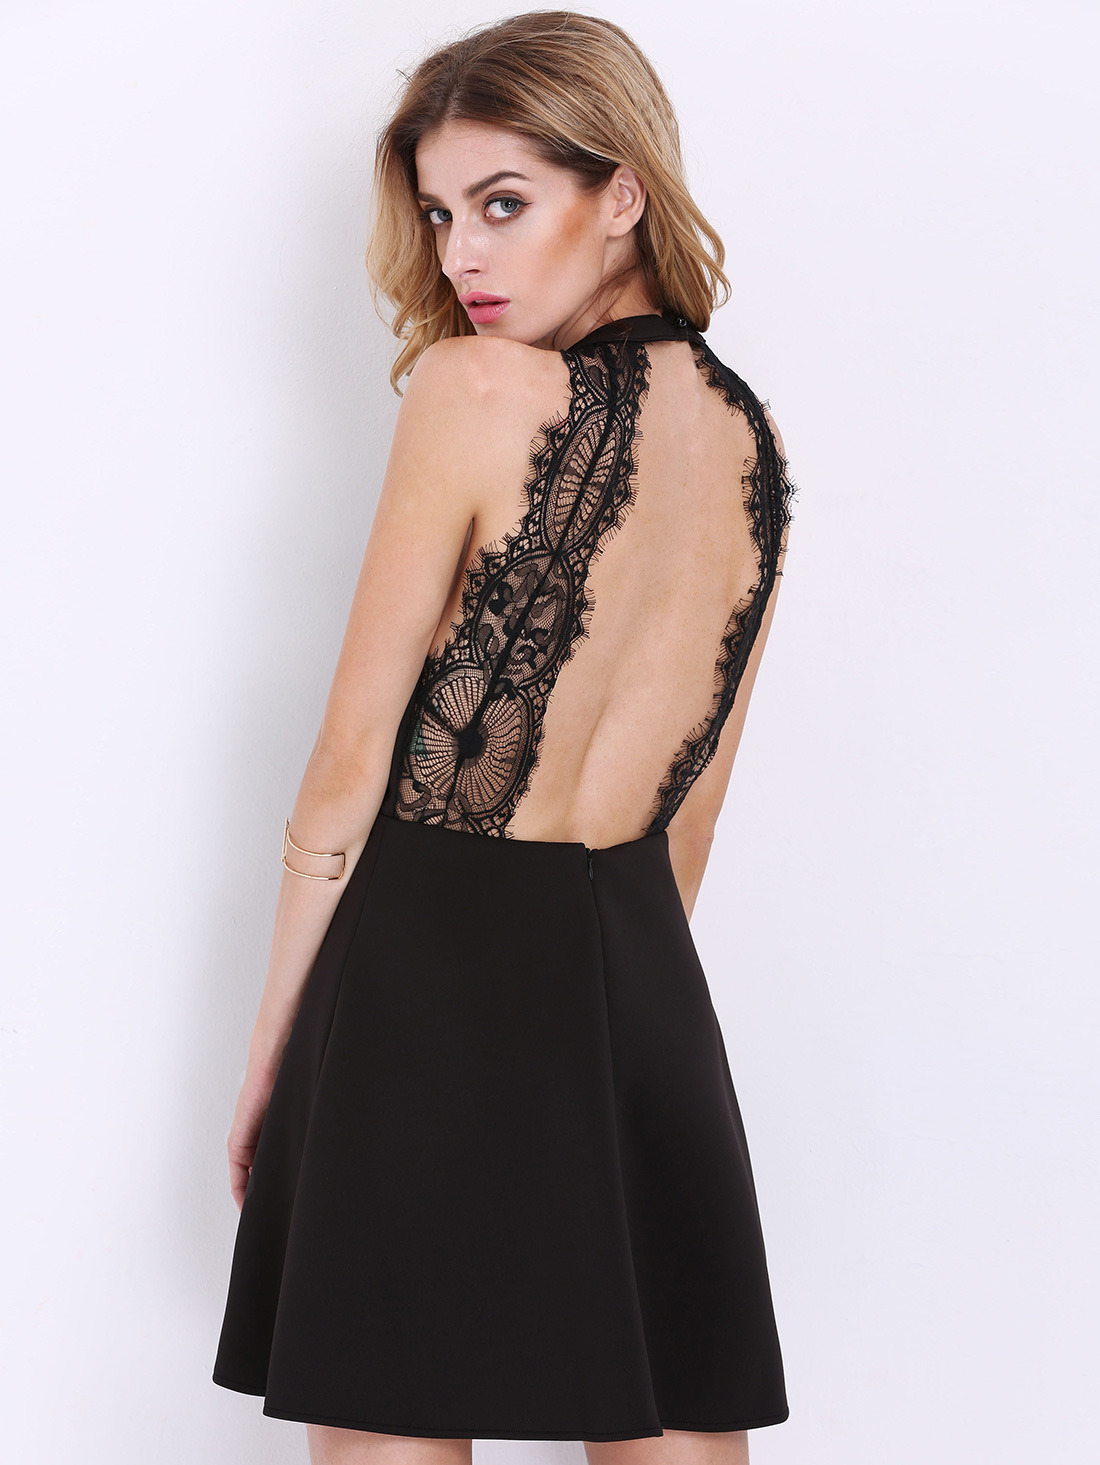 Black Halter Contrast Scallop Lace Backless Dress Exclude